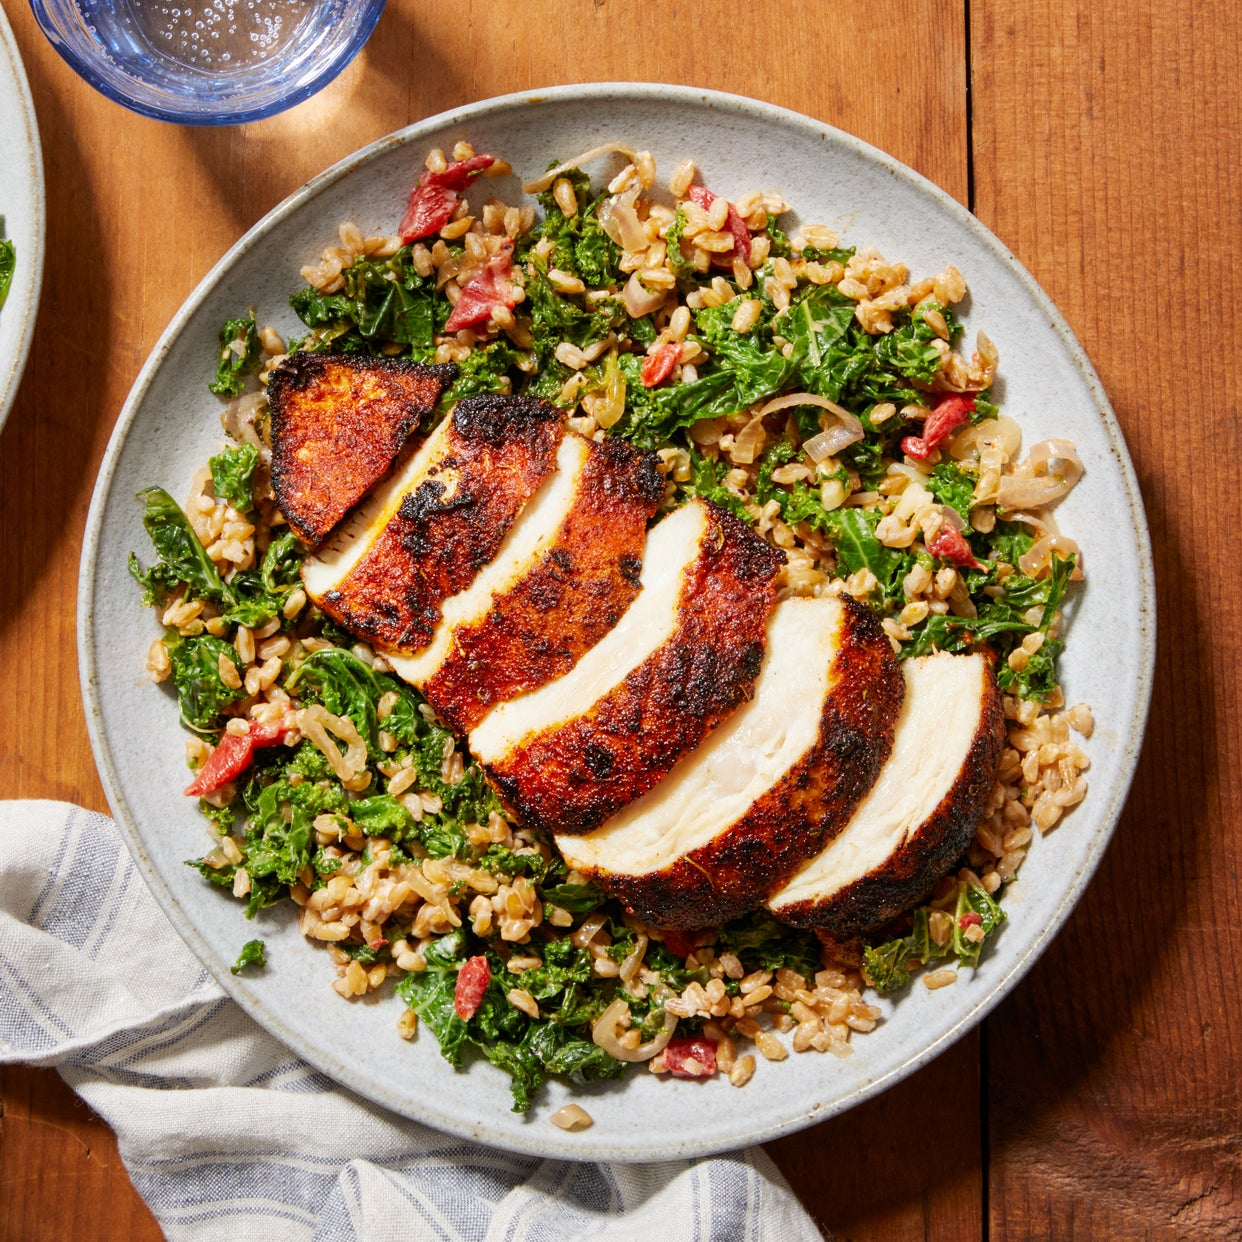 Cajun-Spiced Chicken with Warm Grain Salad